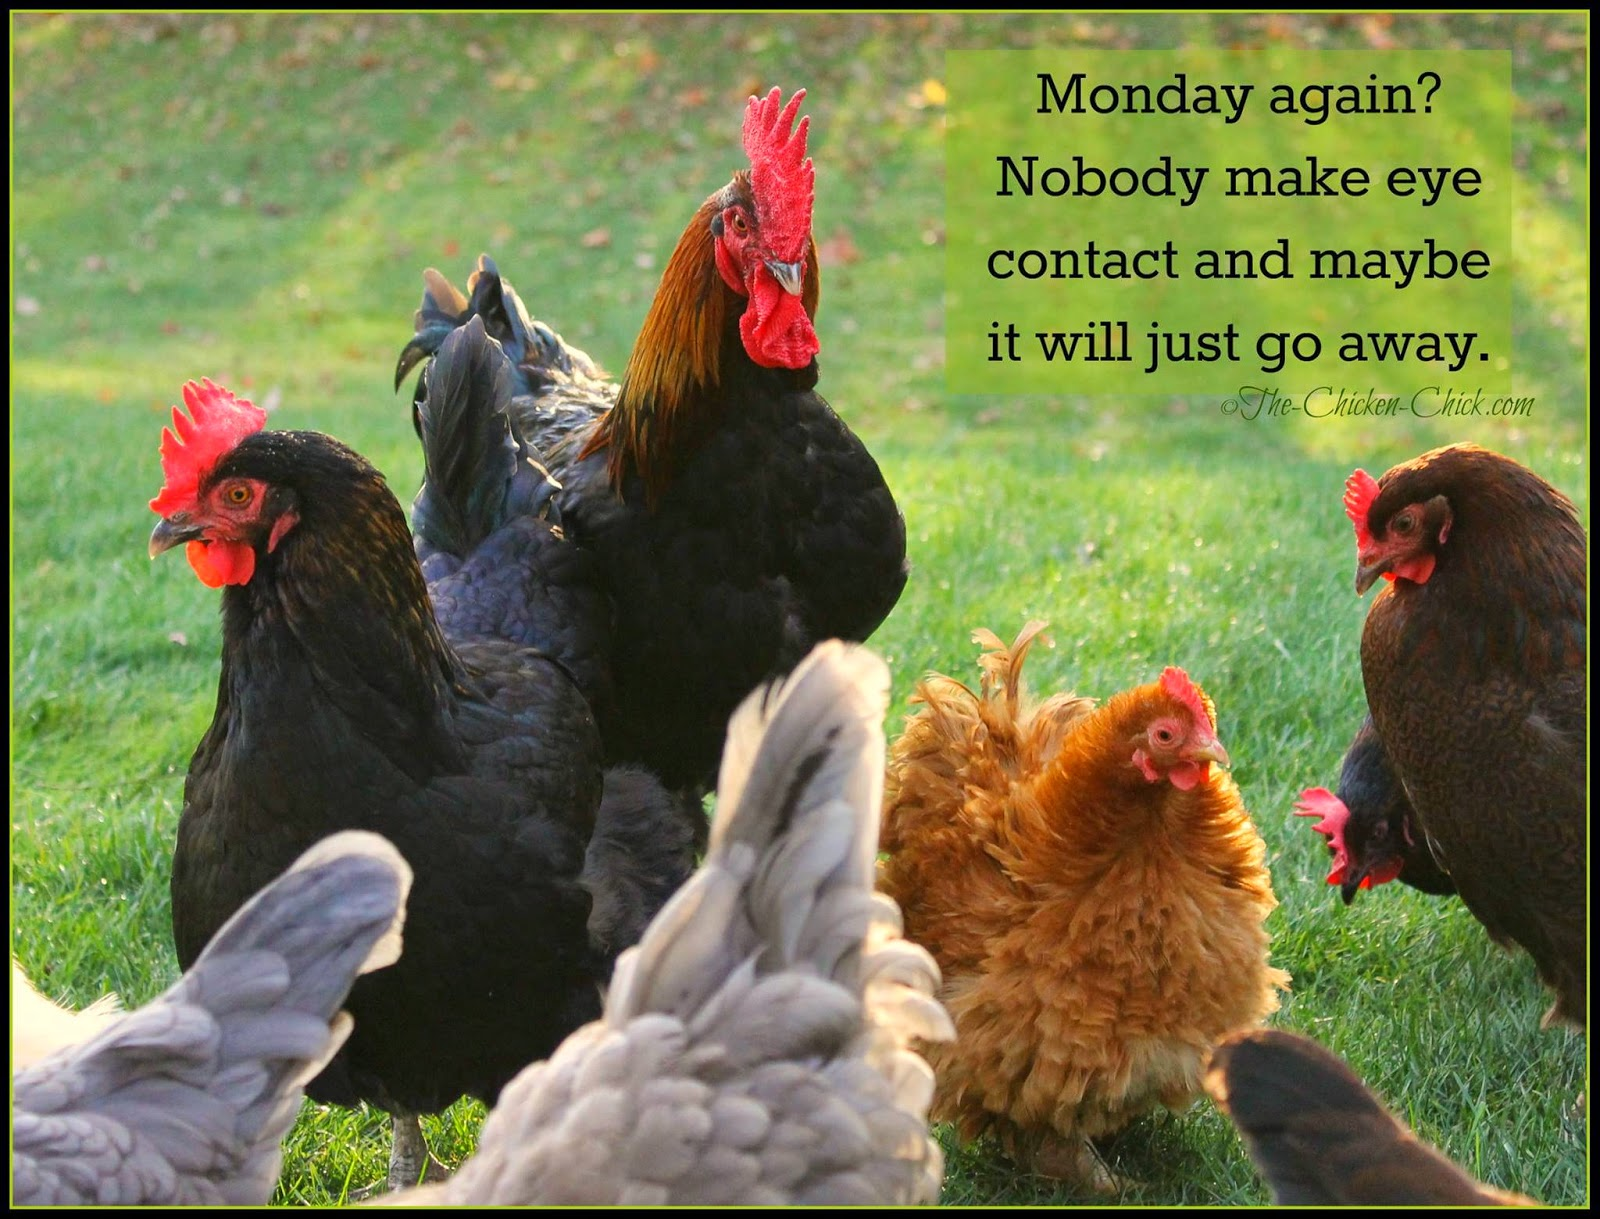 Monday again? Nobody make eye contact and maybe it will just go away.